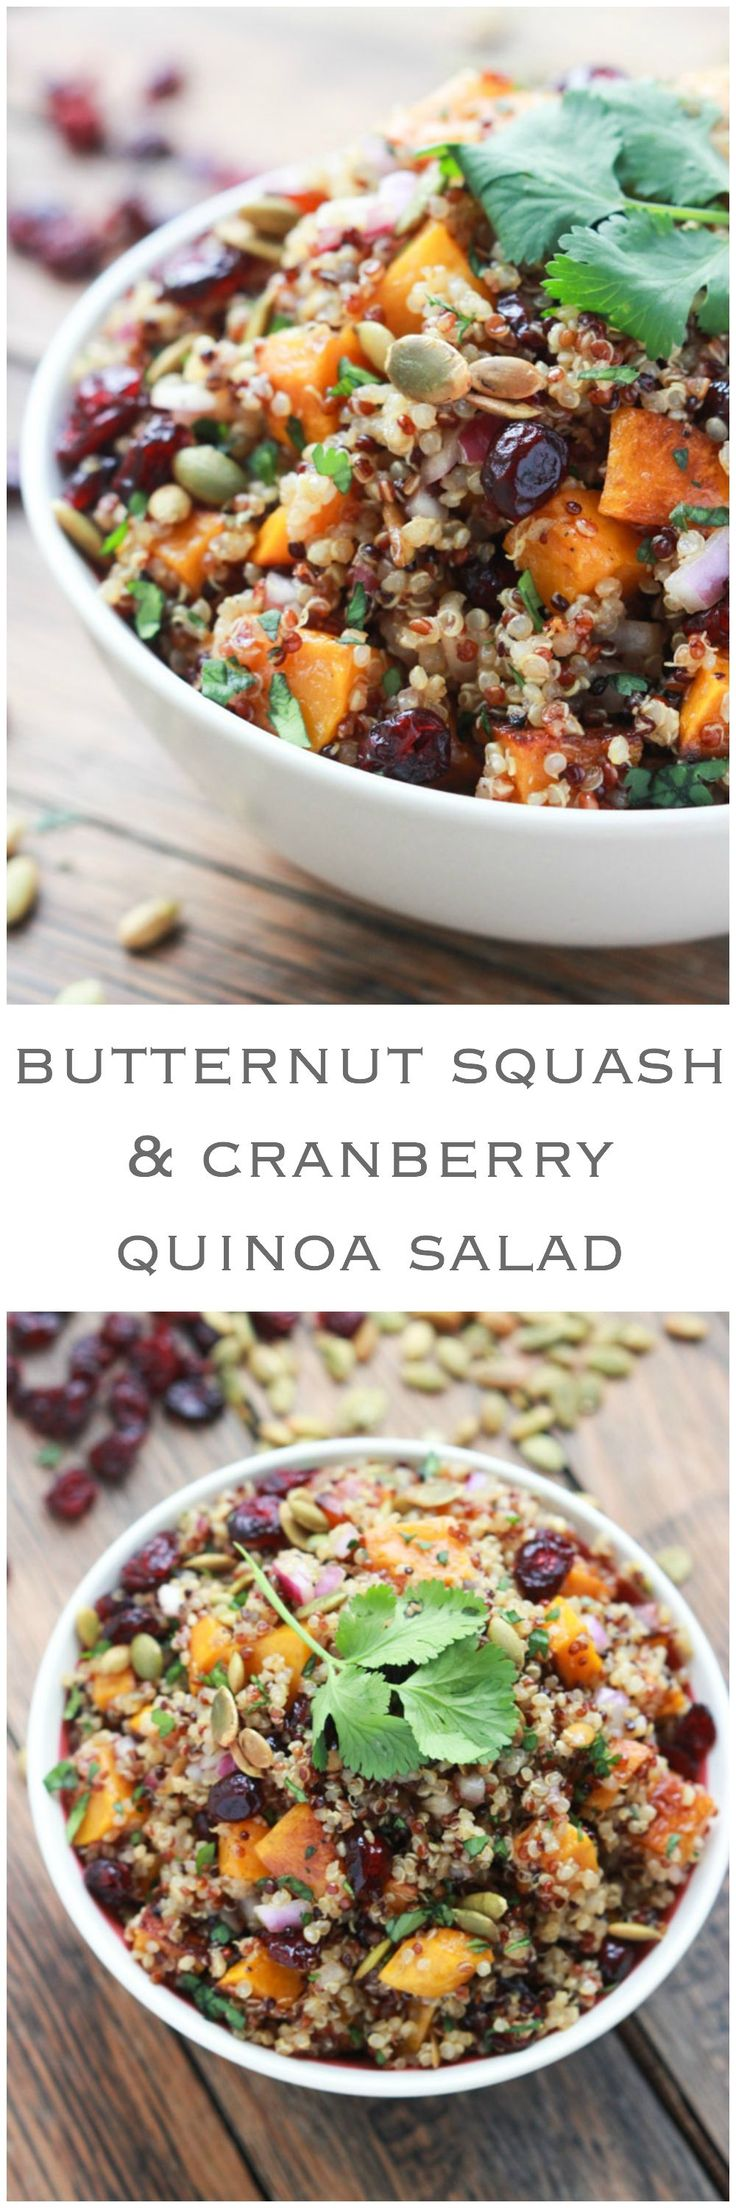 Butternut Squash and Cranberry Quinoa Salad - healthy fall salad with delicious and clean ingredients | littlebroken.com @littlebroken